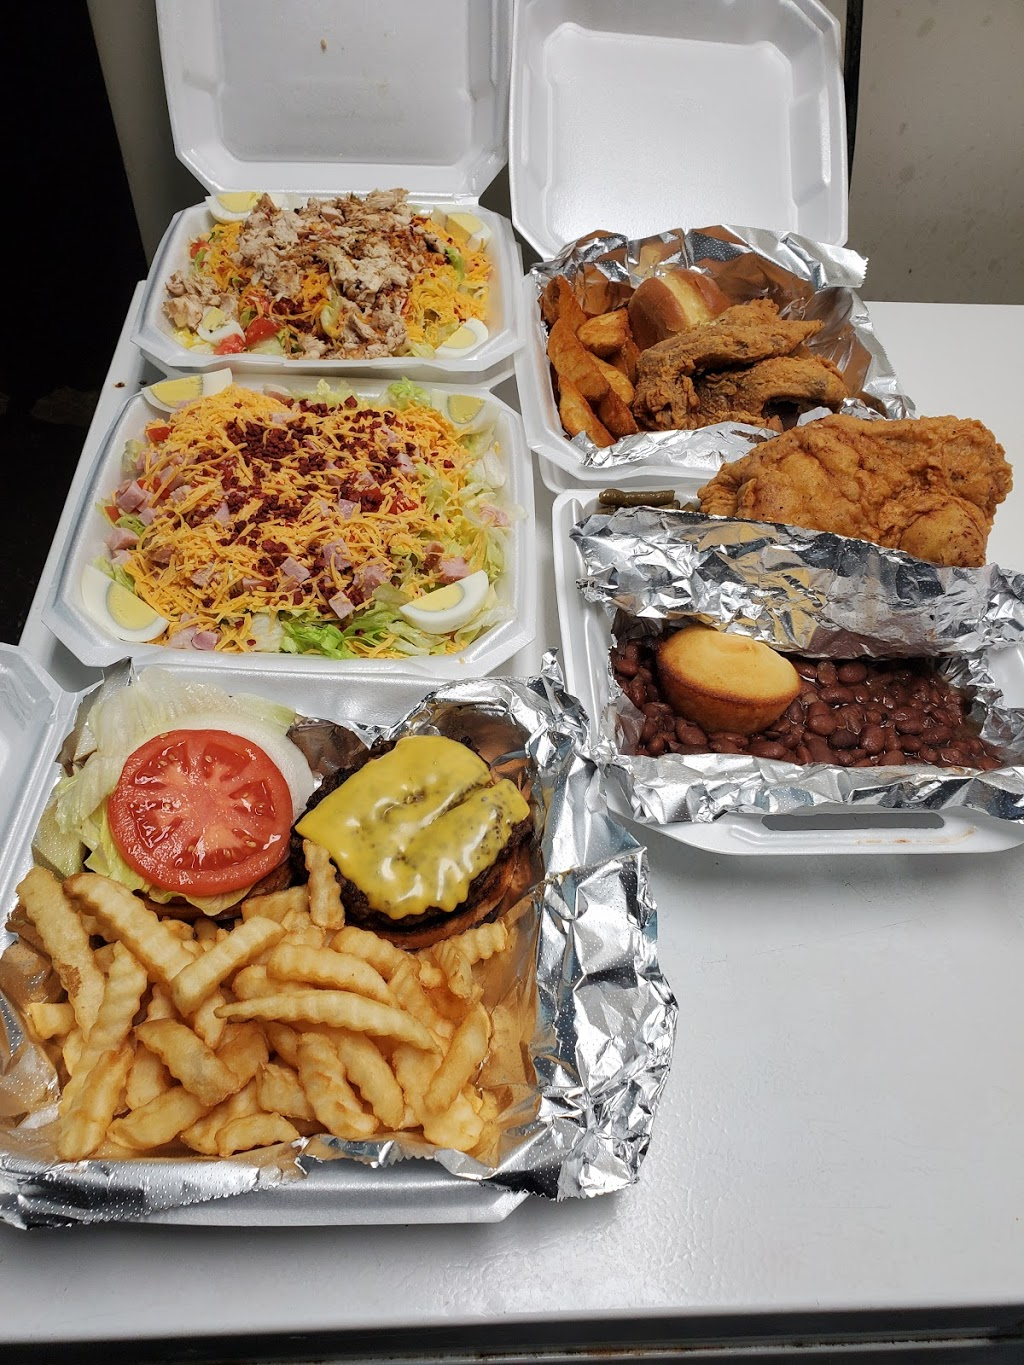 Paps Diner | restaurant | 448 Old Memphis Oxford Rd, Senatobia, MS 38668, USA | 6625627872 OR +1 662-562-7872